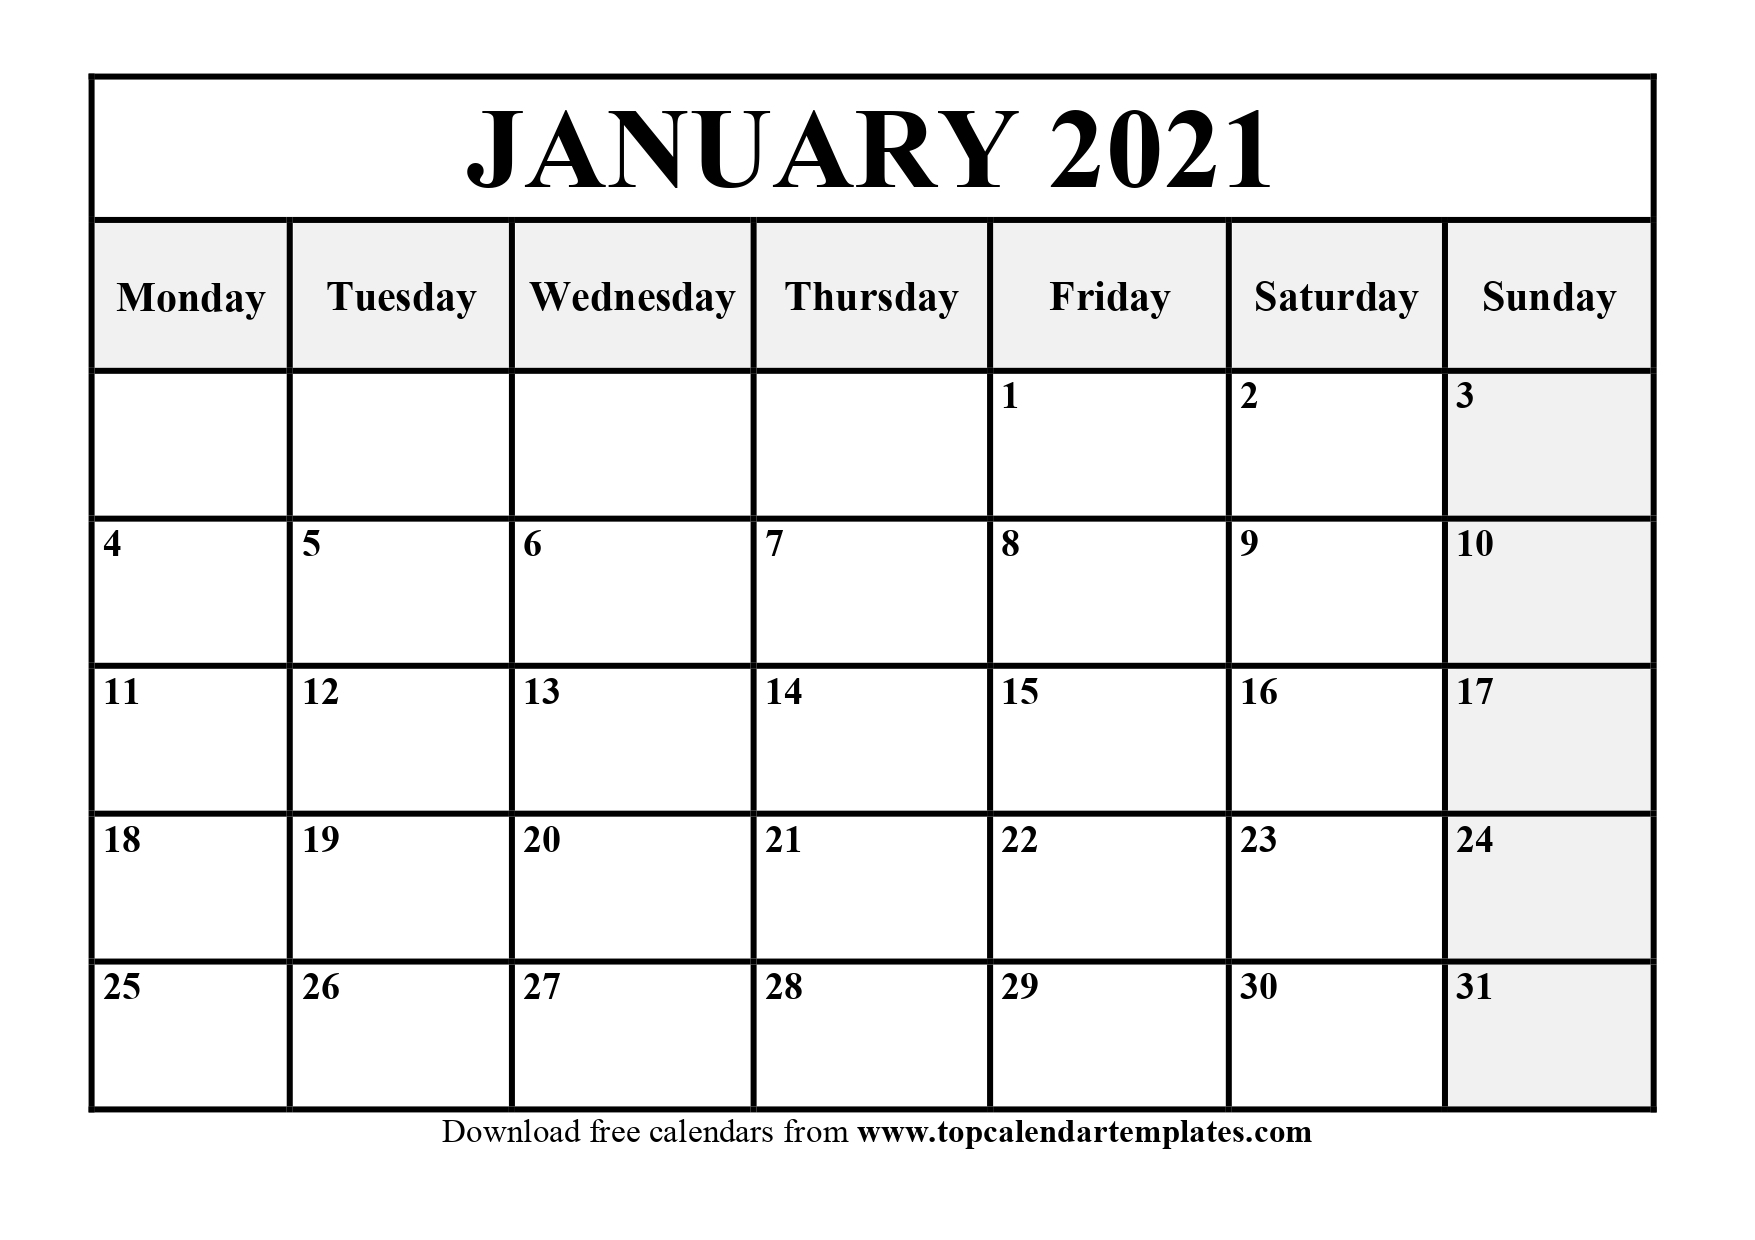 Printable Blank Monthly Calendar 2021 With Lines | Ten with regard to Monthly Calendars Free Ruled 2021